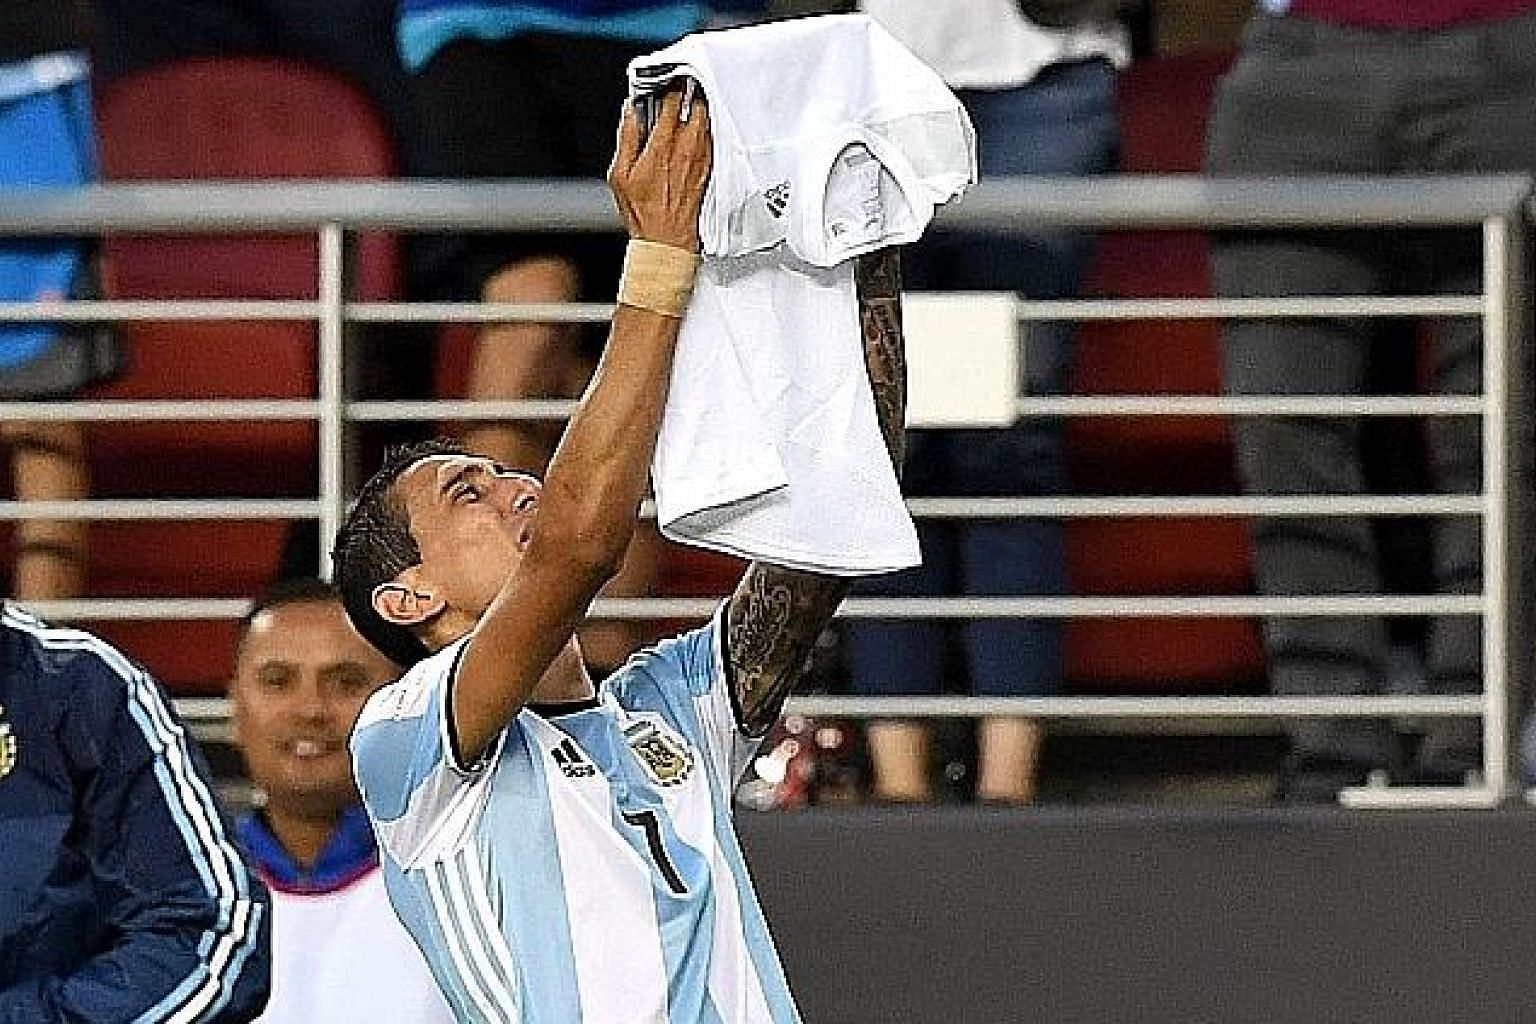 Angel di Maria paying tribute to his late grandmother after scoring Argentina's opening goal against Chile in their Copa America Centenario match in Santa Clara. The win avenged his team's penalty shoot-out loss to their rivals in last year's Copa fi